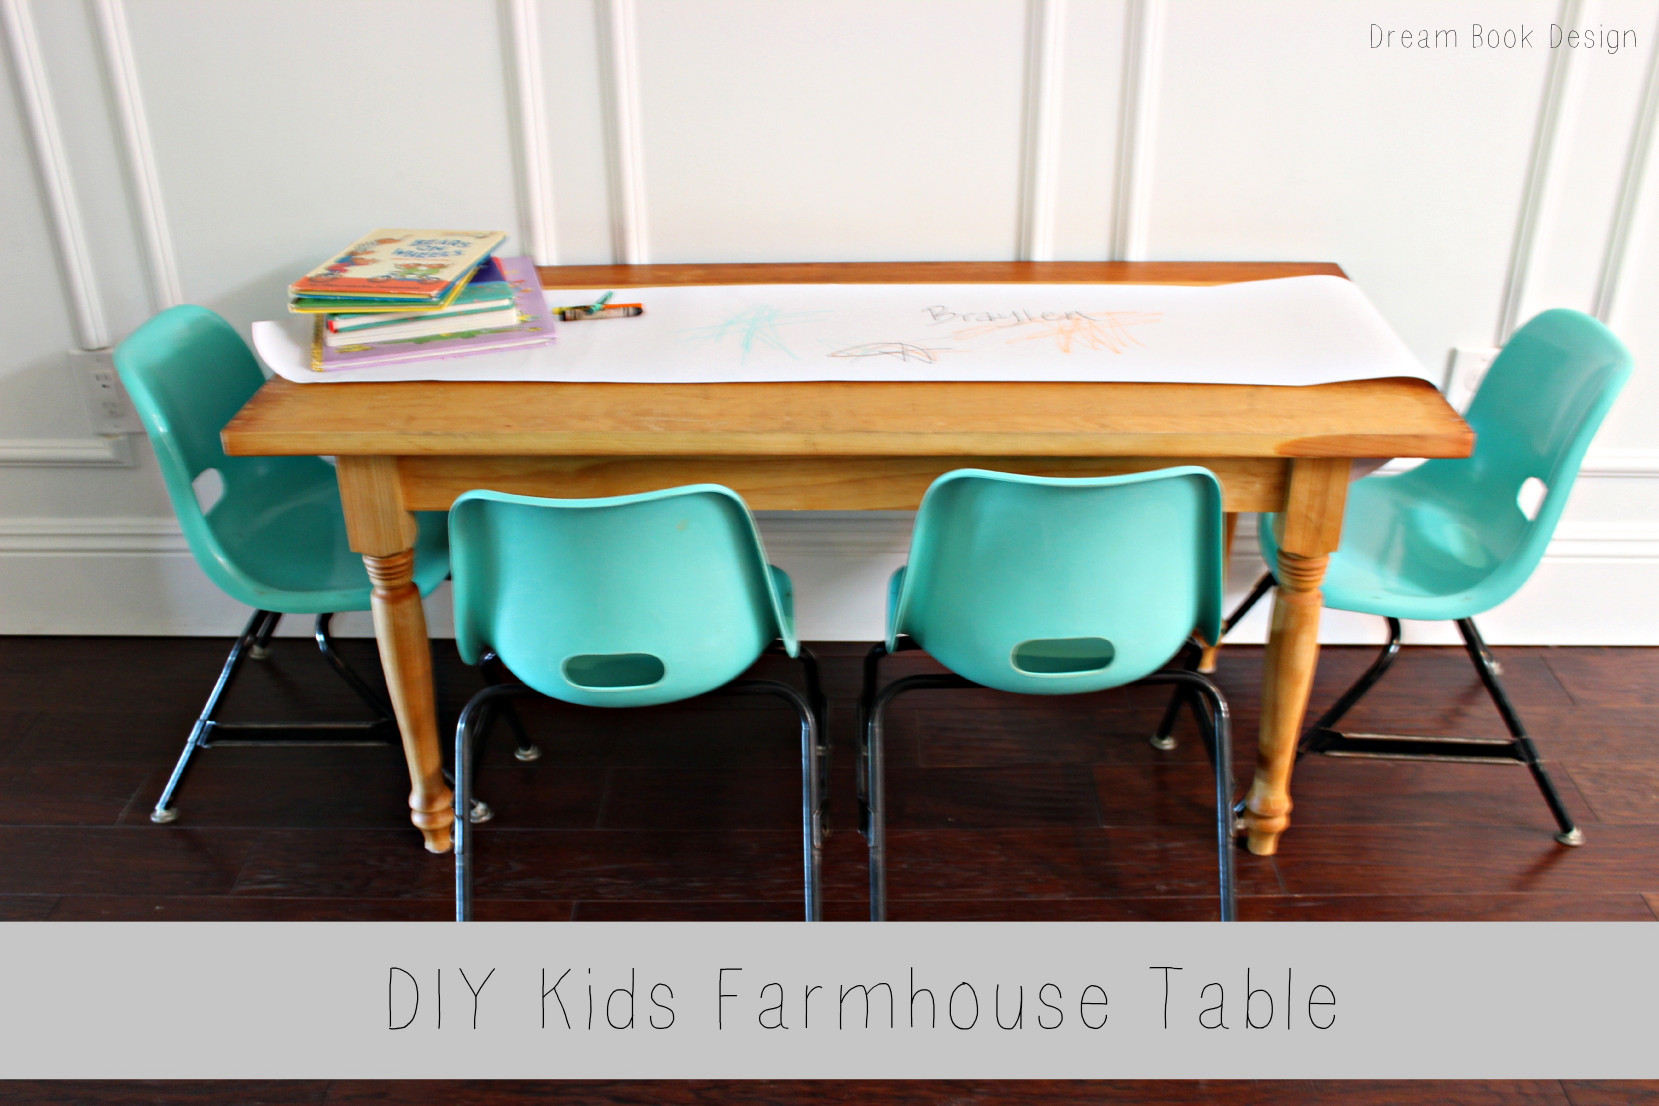 DIY Kids Table  DIY Kids Farmhouse Table Dream Book Design